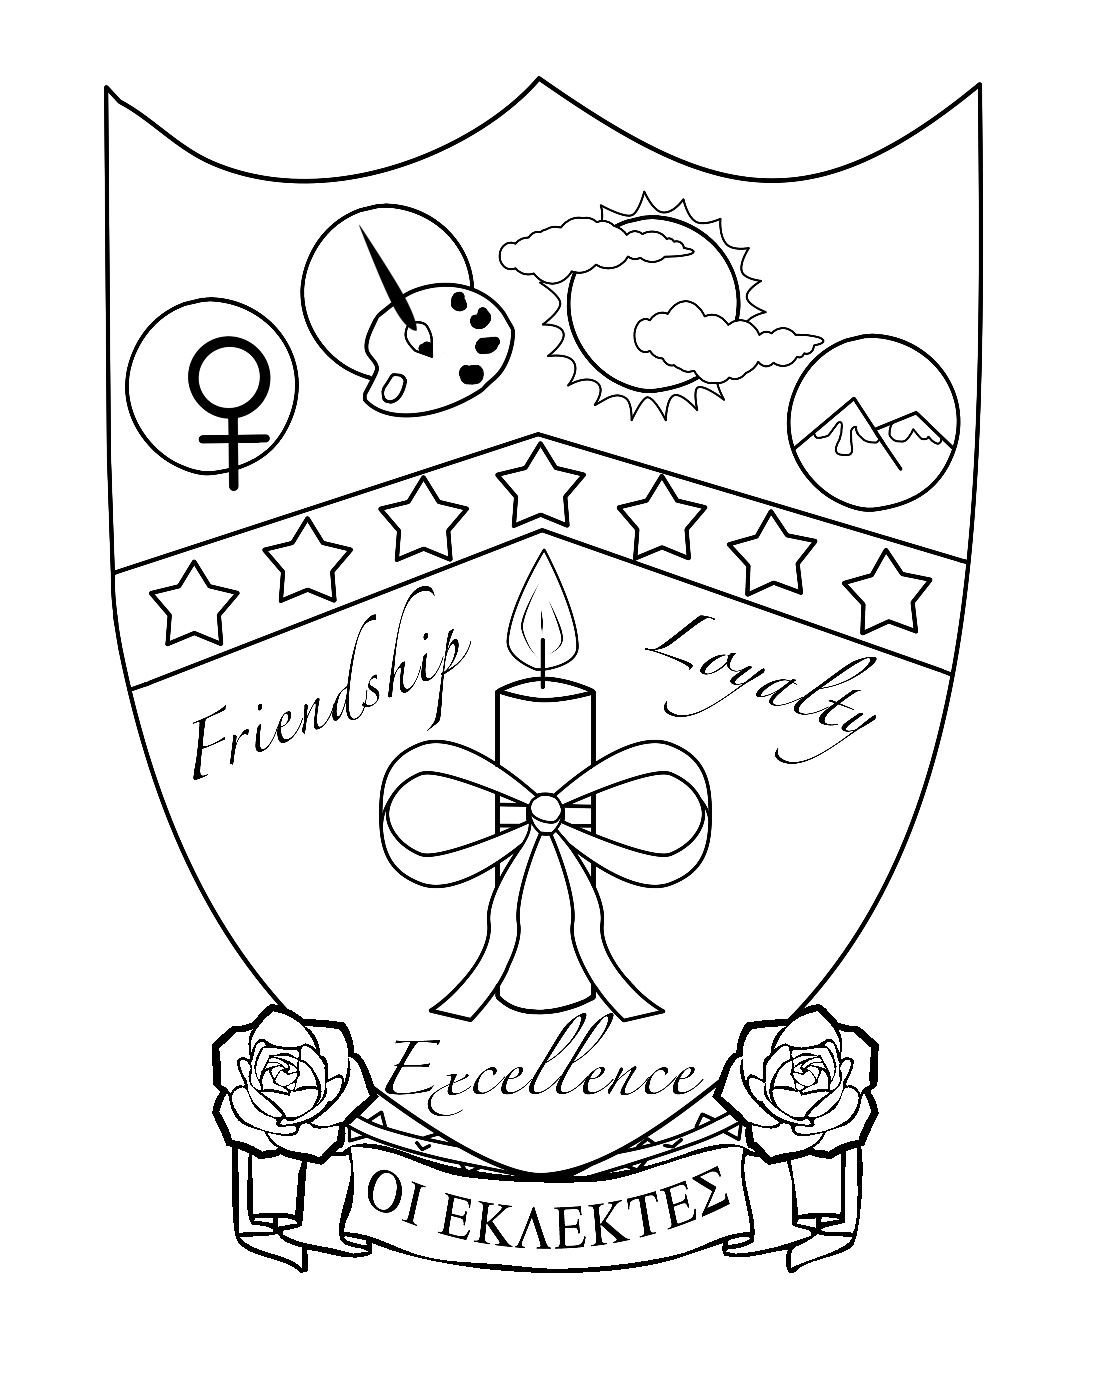 Families phi lambda xi the symbols at the top represent each family humility creativity gentility and vanity buycottarizona